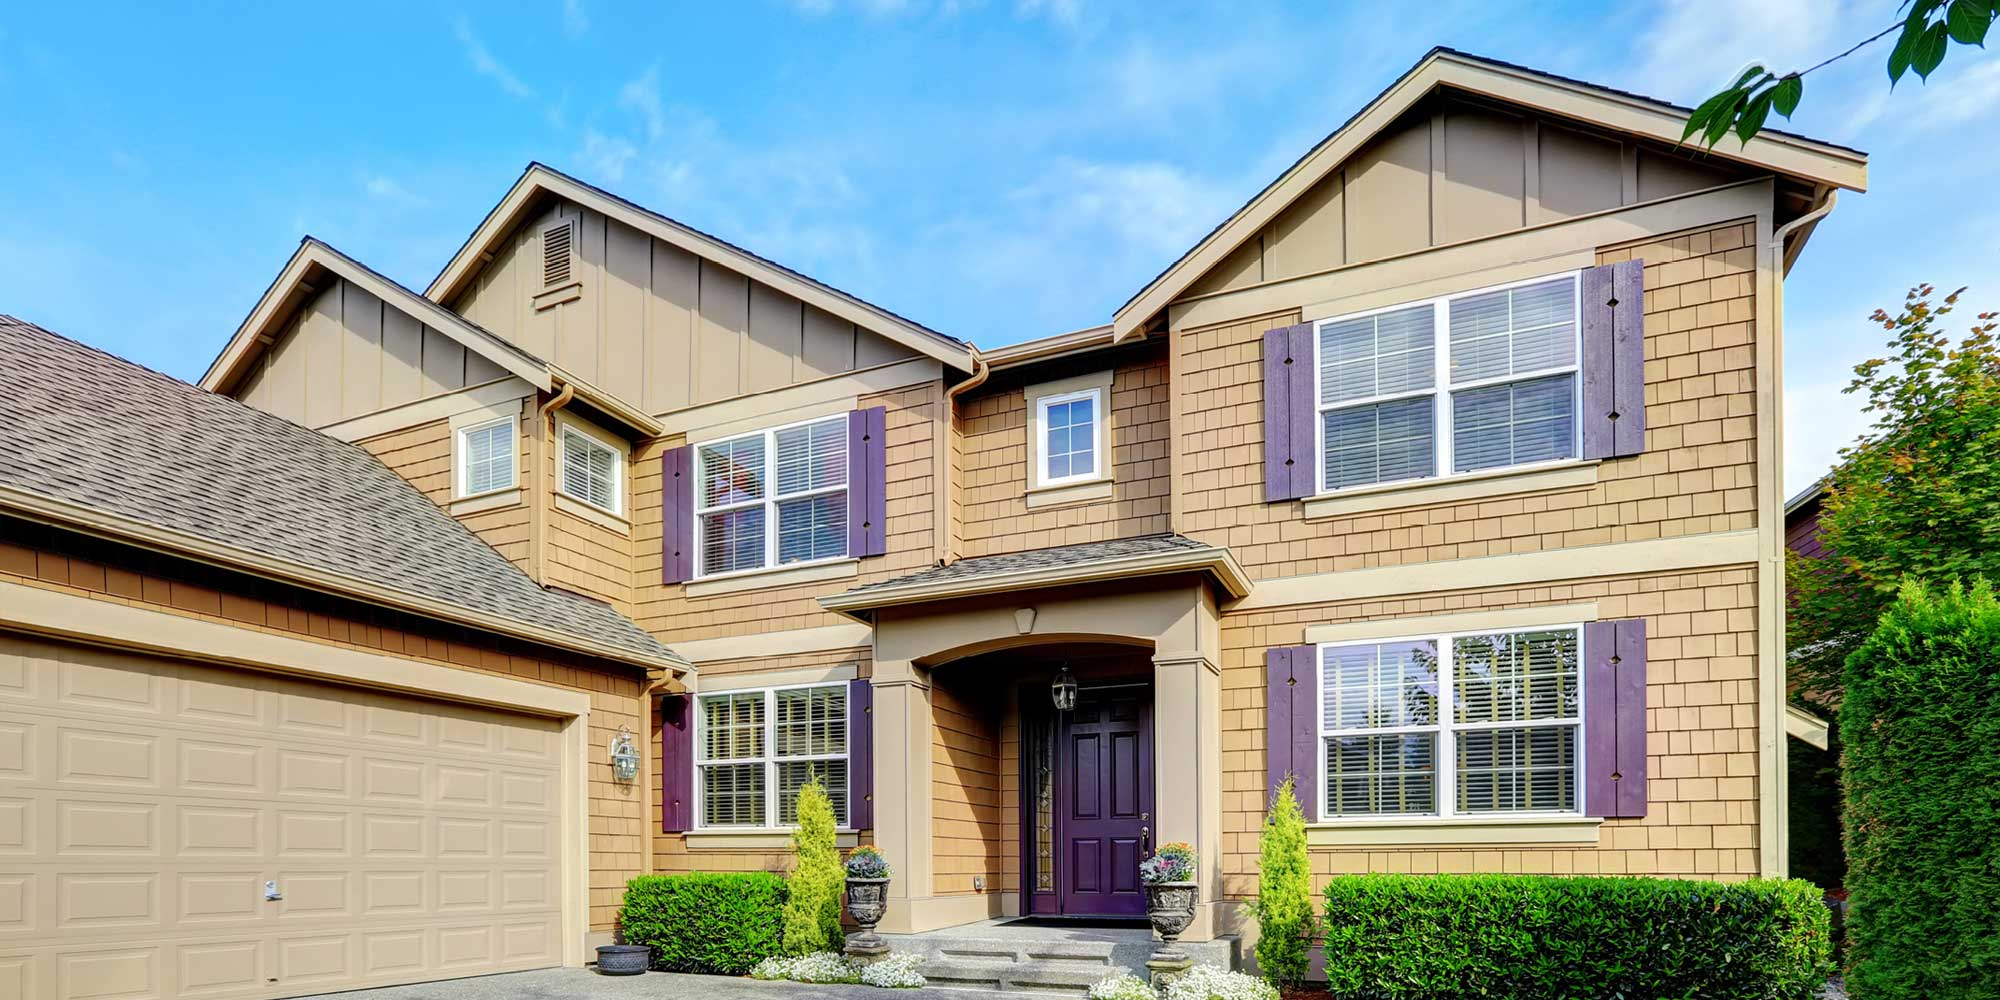 A house with professional siding in Cream or Maple color